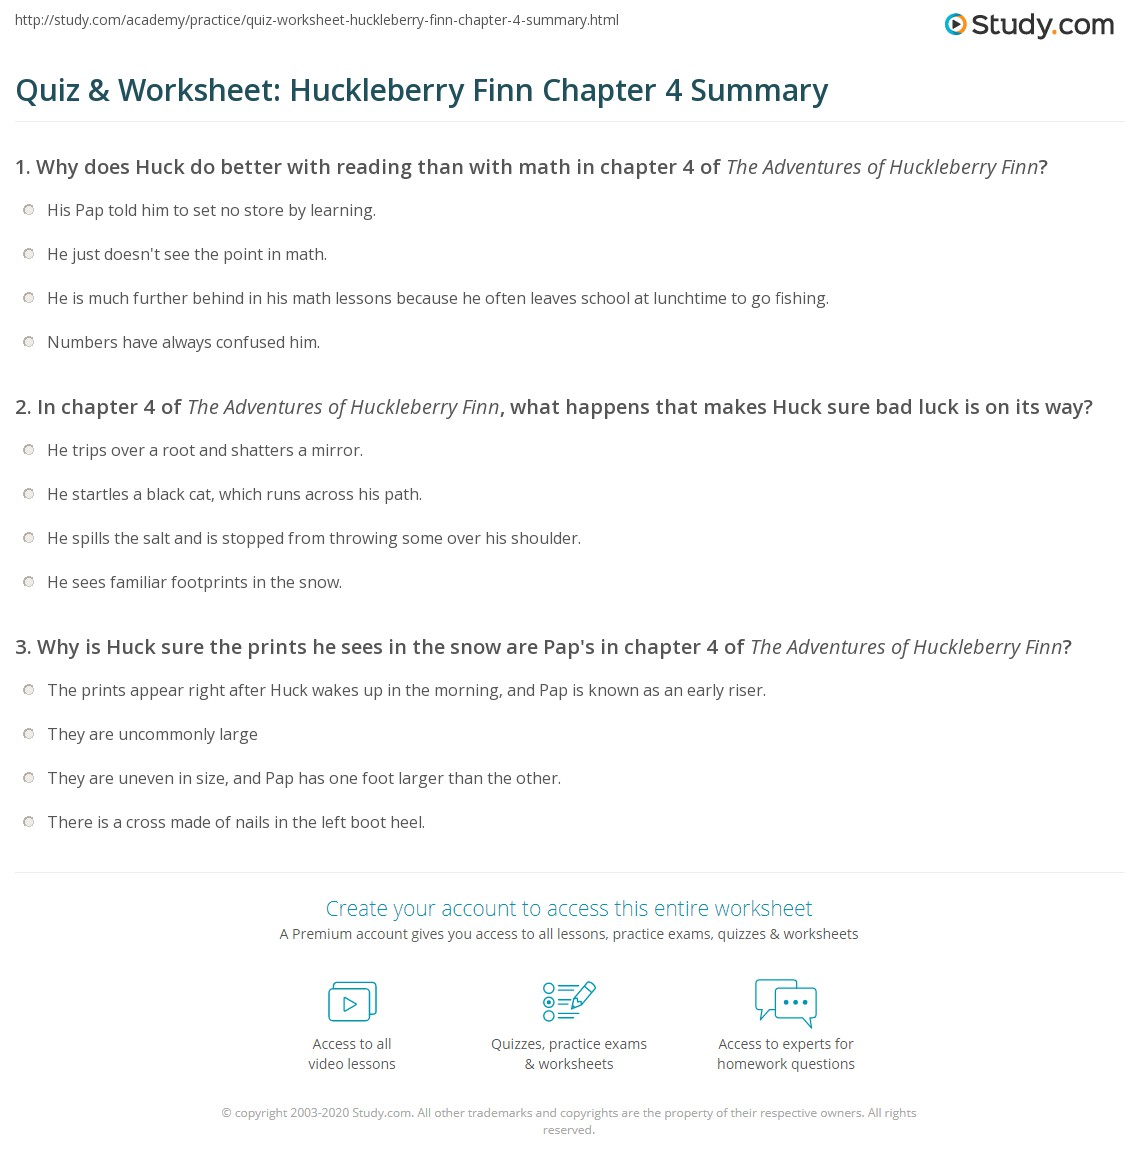 quiz worksheet huckleberry finn chapter 4 summary. Black Bedroom Furniture Sets. Home Design Ideas